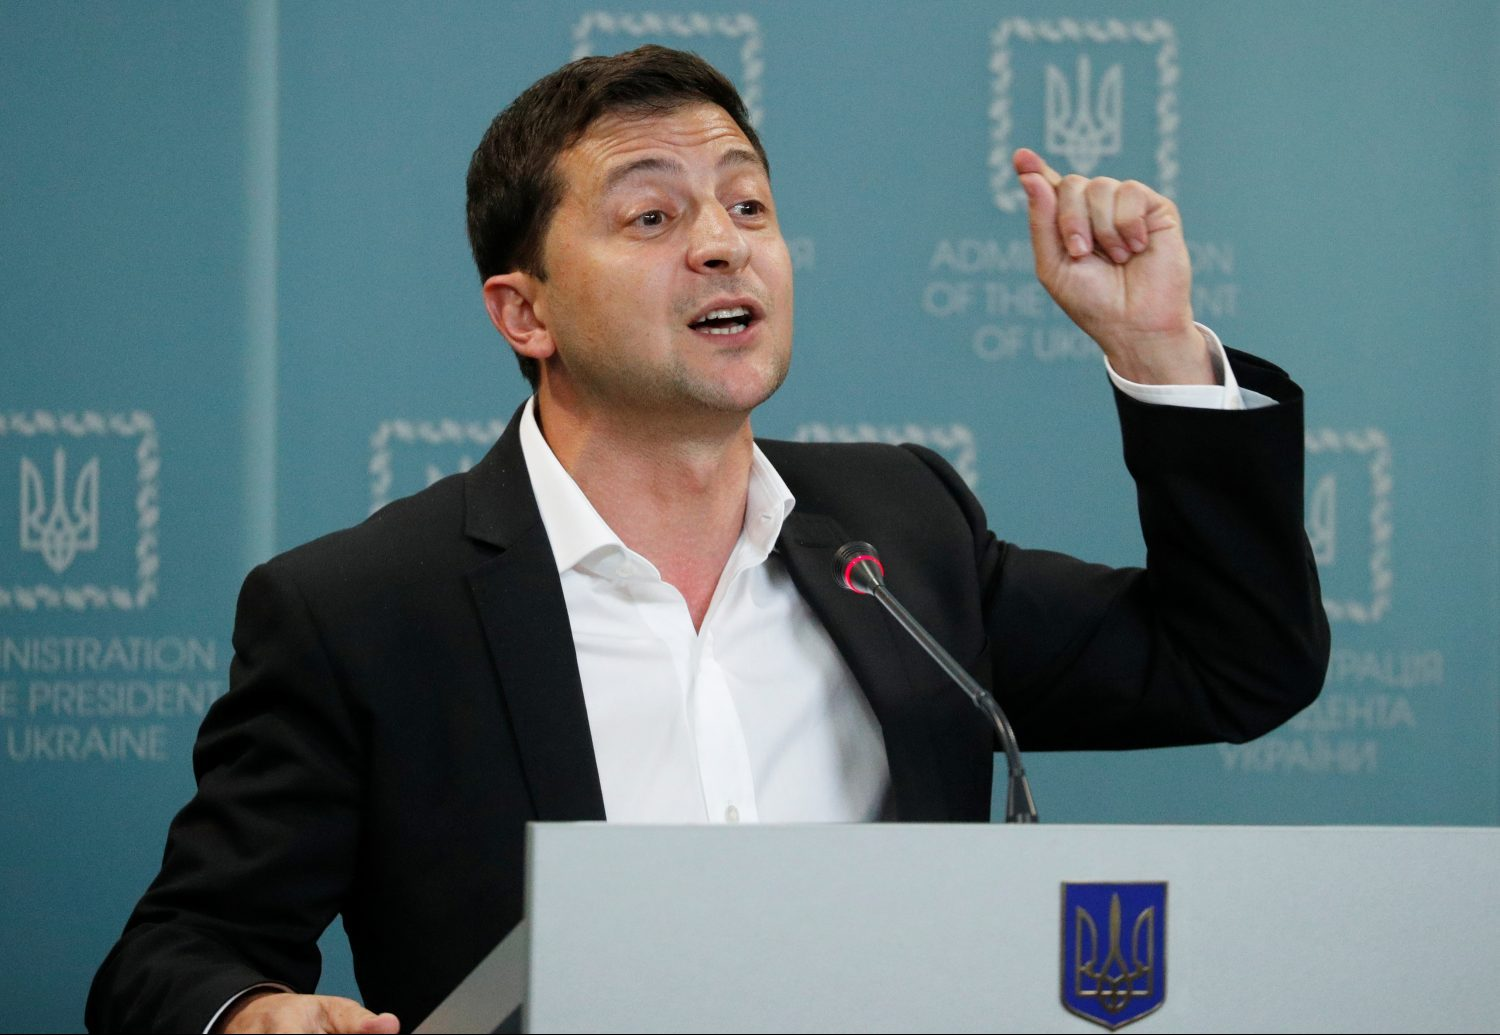 Q&A: Where is President Zelenskyy leading Ukraine?